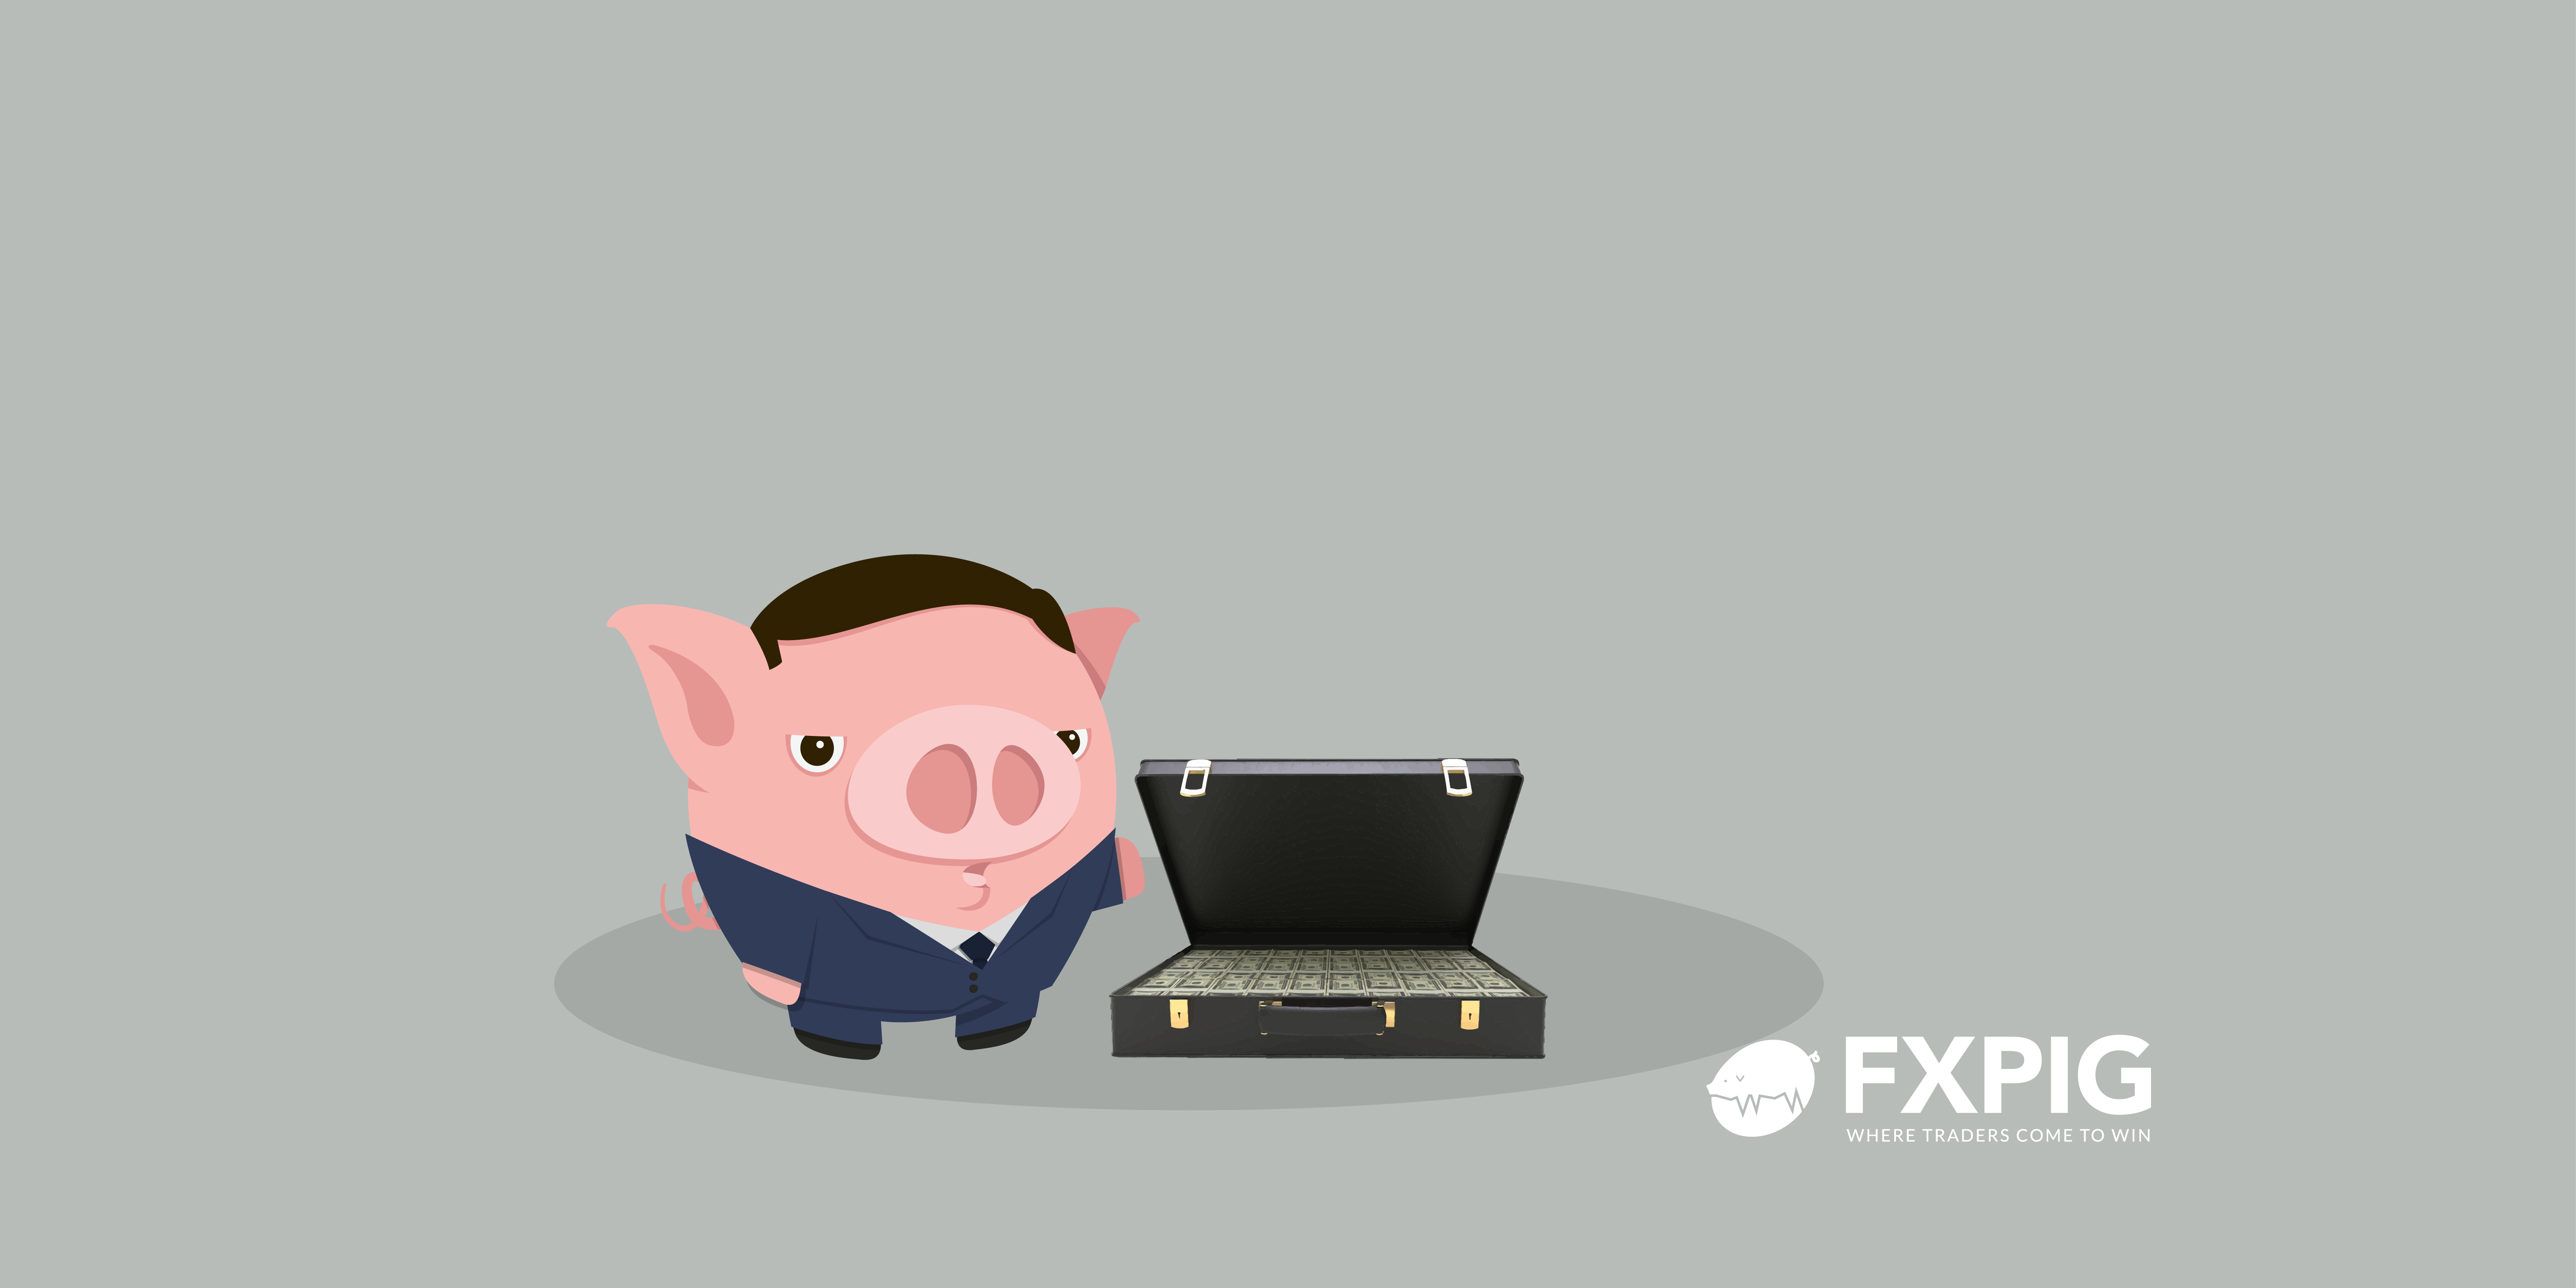 USD_May-rise_risk-ahead_Forex_FXPIG